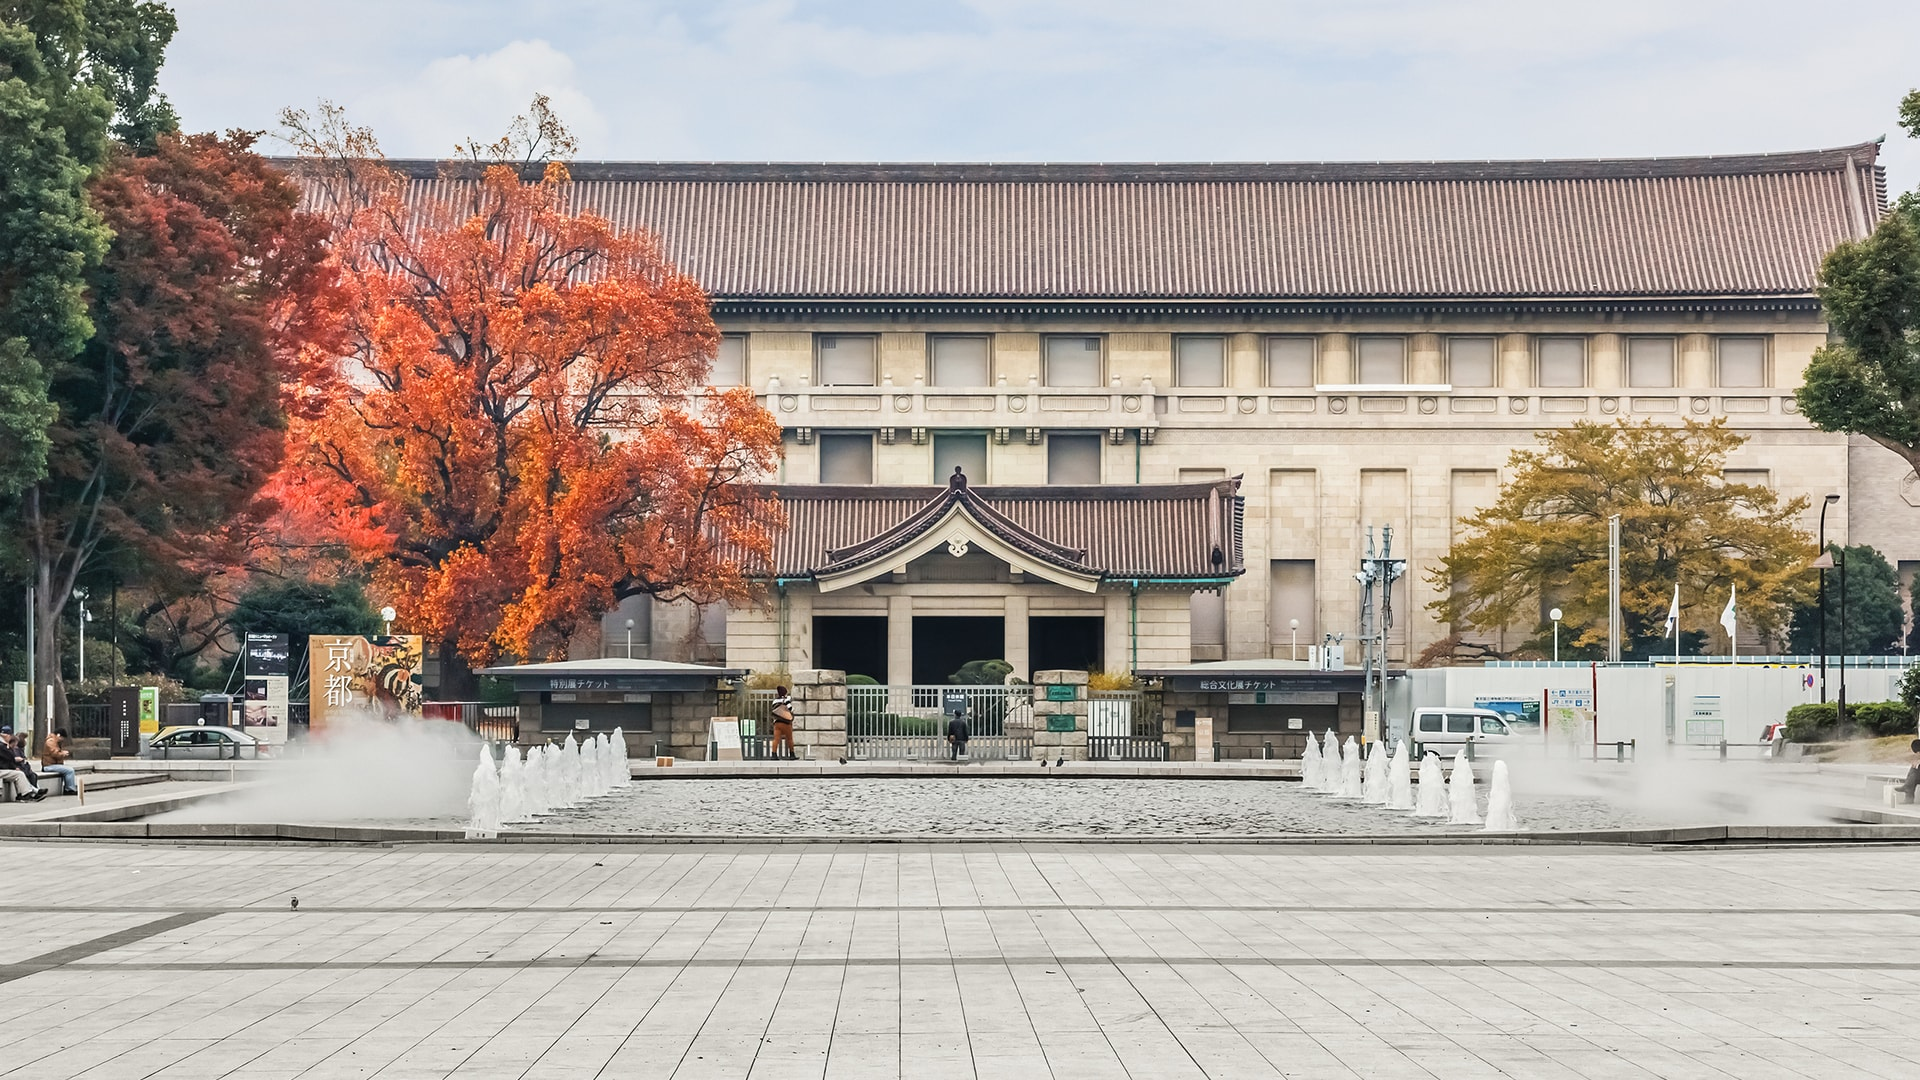 museo tokyo mostra architettura giapponese